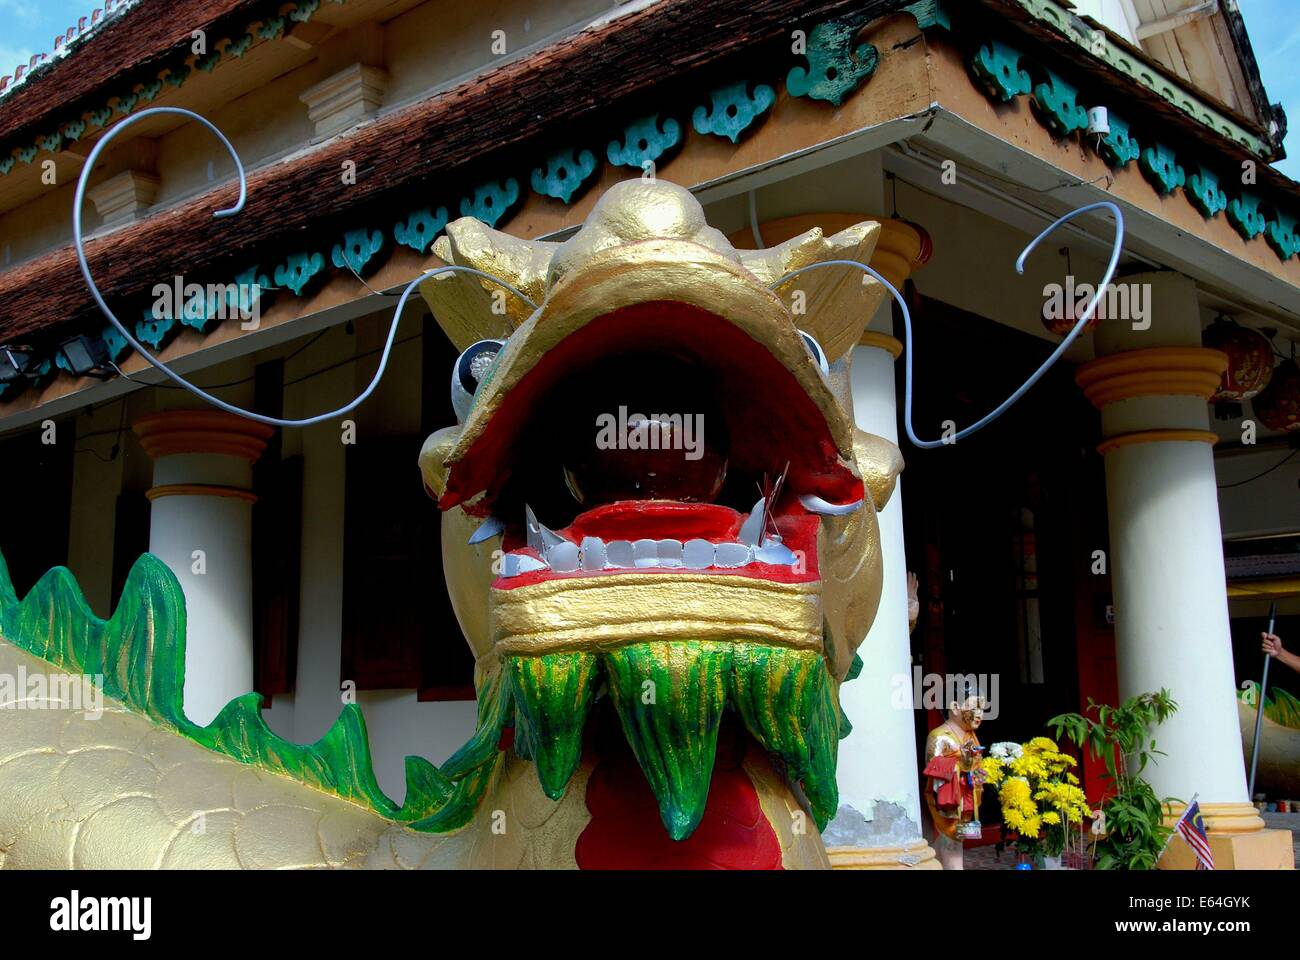 GEORGETOWN, MALAYSIA: Closeup of the immense dragon with its open mouth holding a symbolic ball at Thai Wat Buppharam Stock Photo